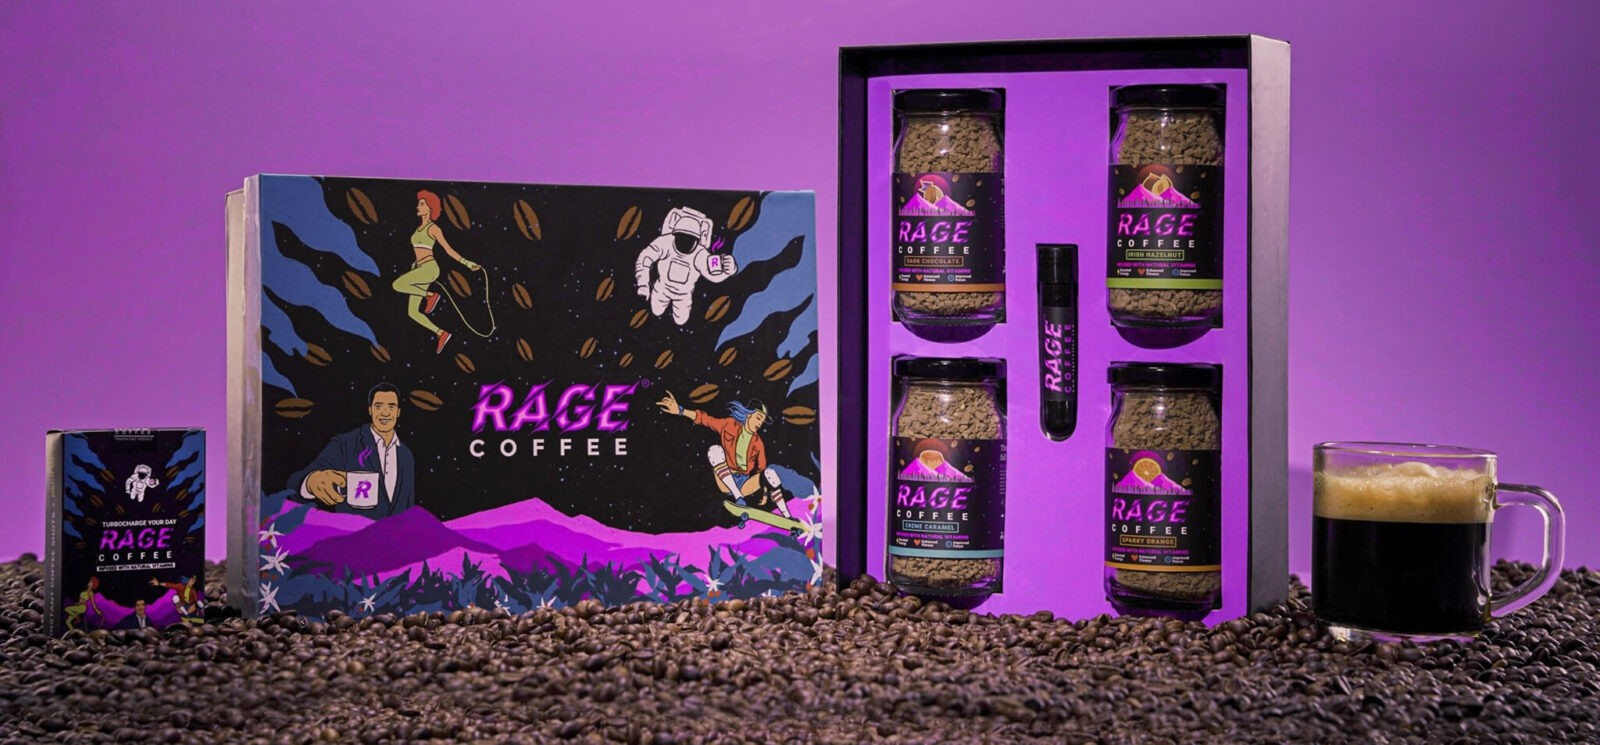 Rage_coffee